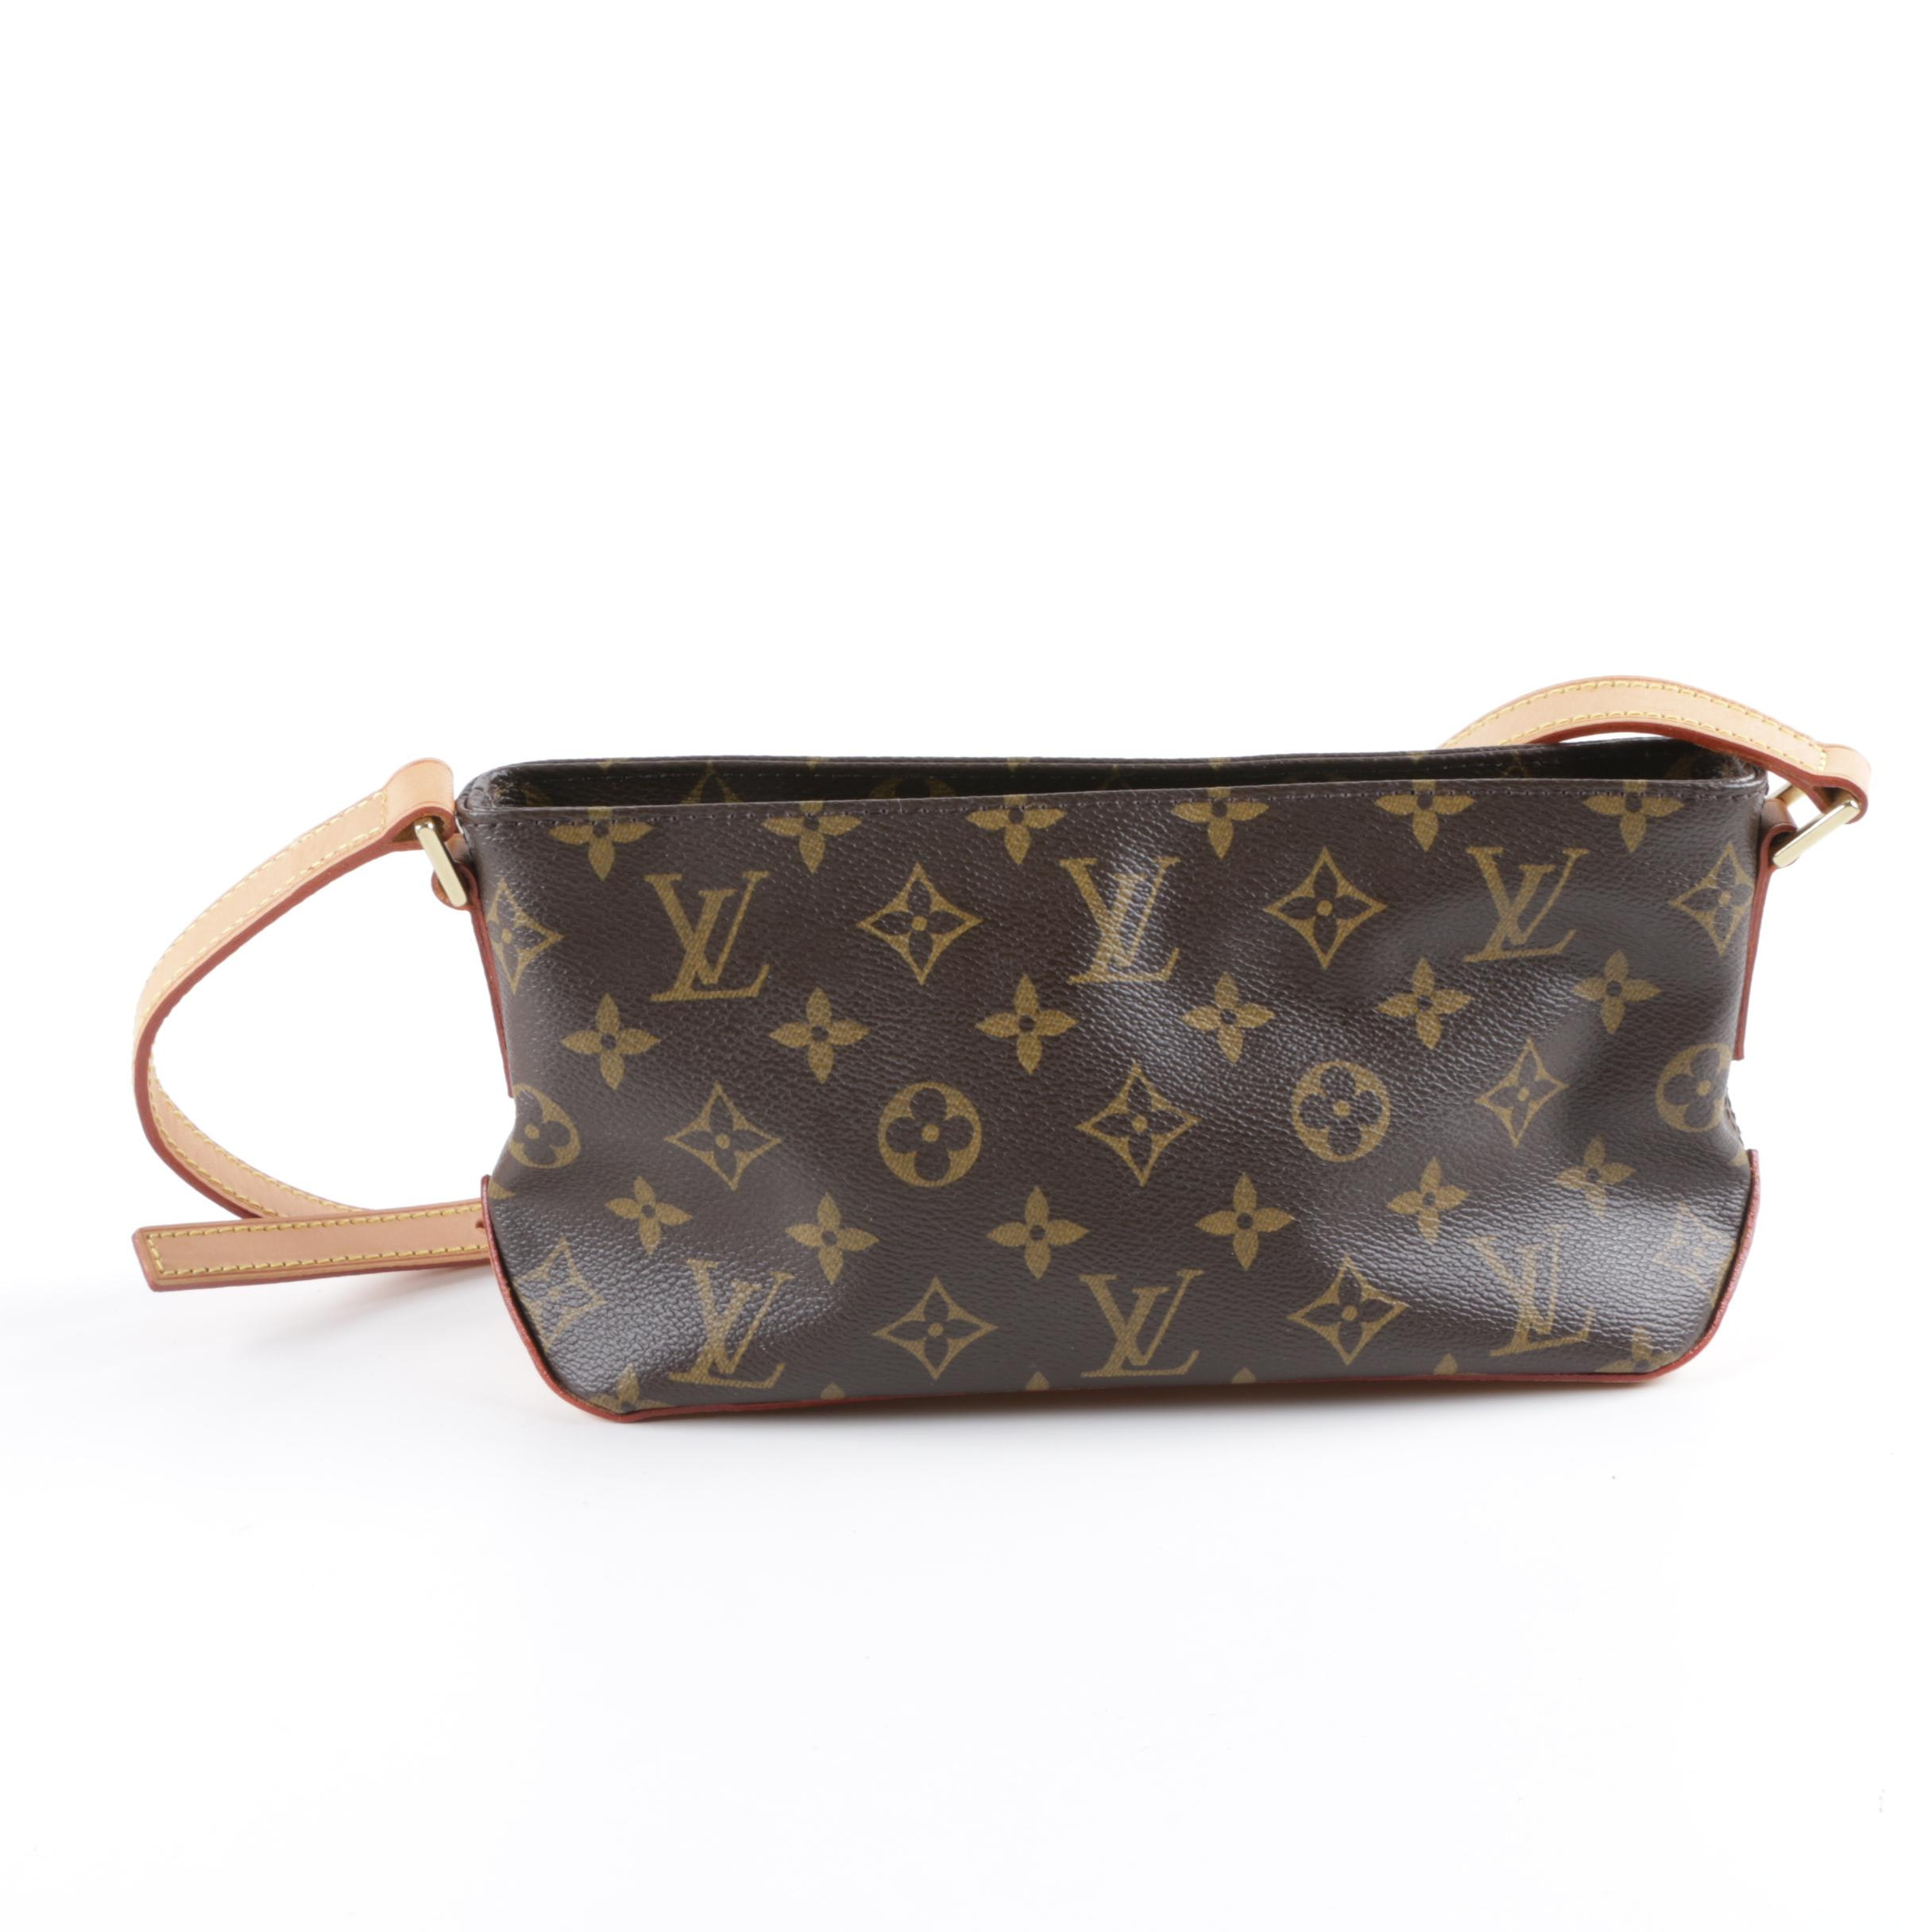 Louis Vuitton of Paris Monogram Trotteur Crossbody Bag